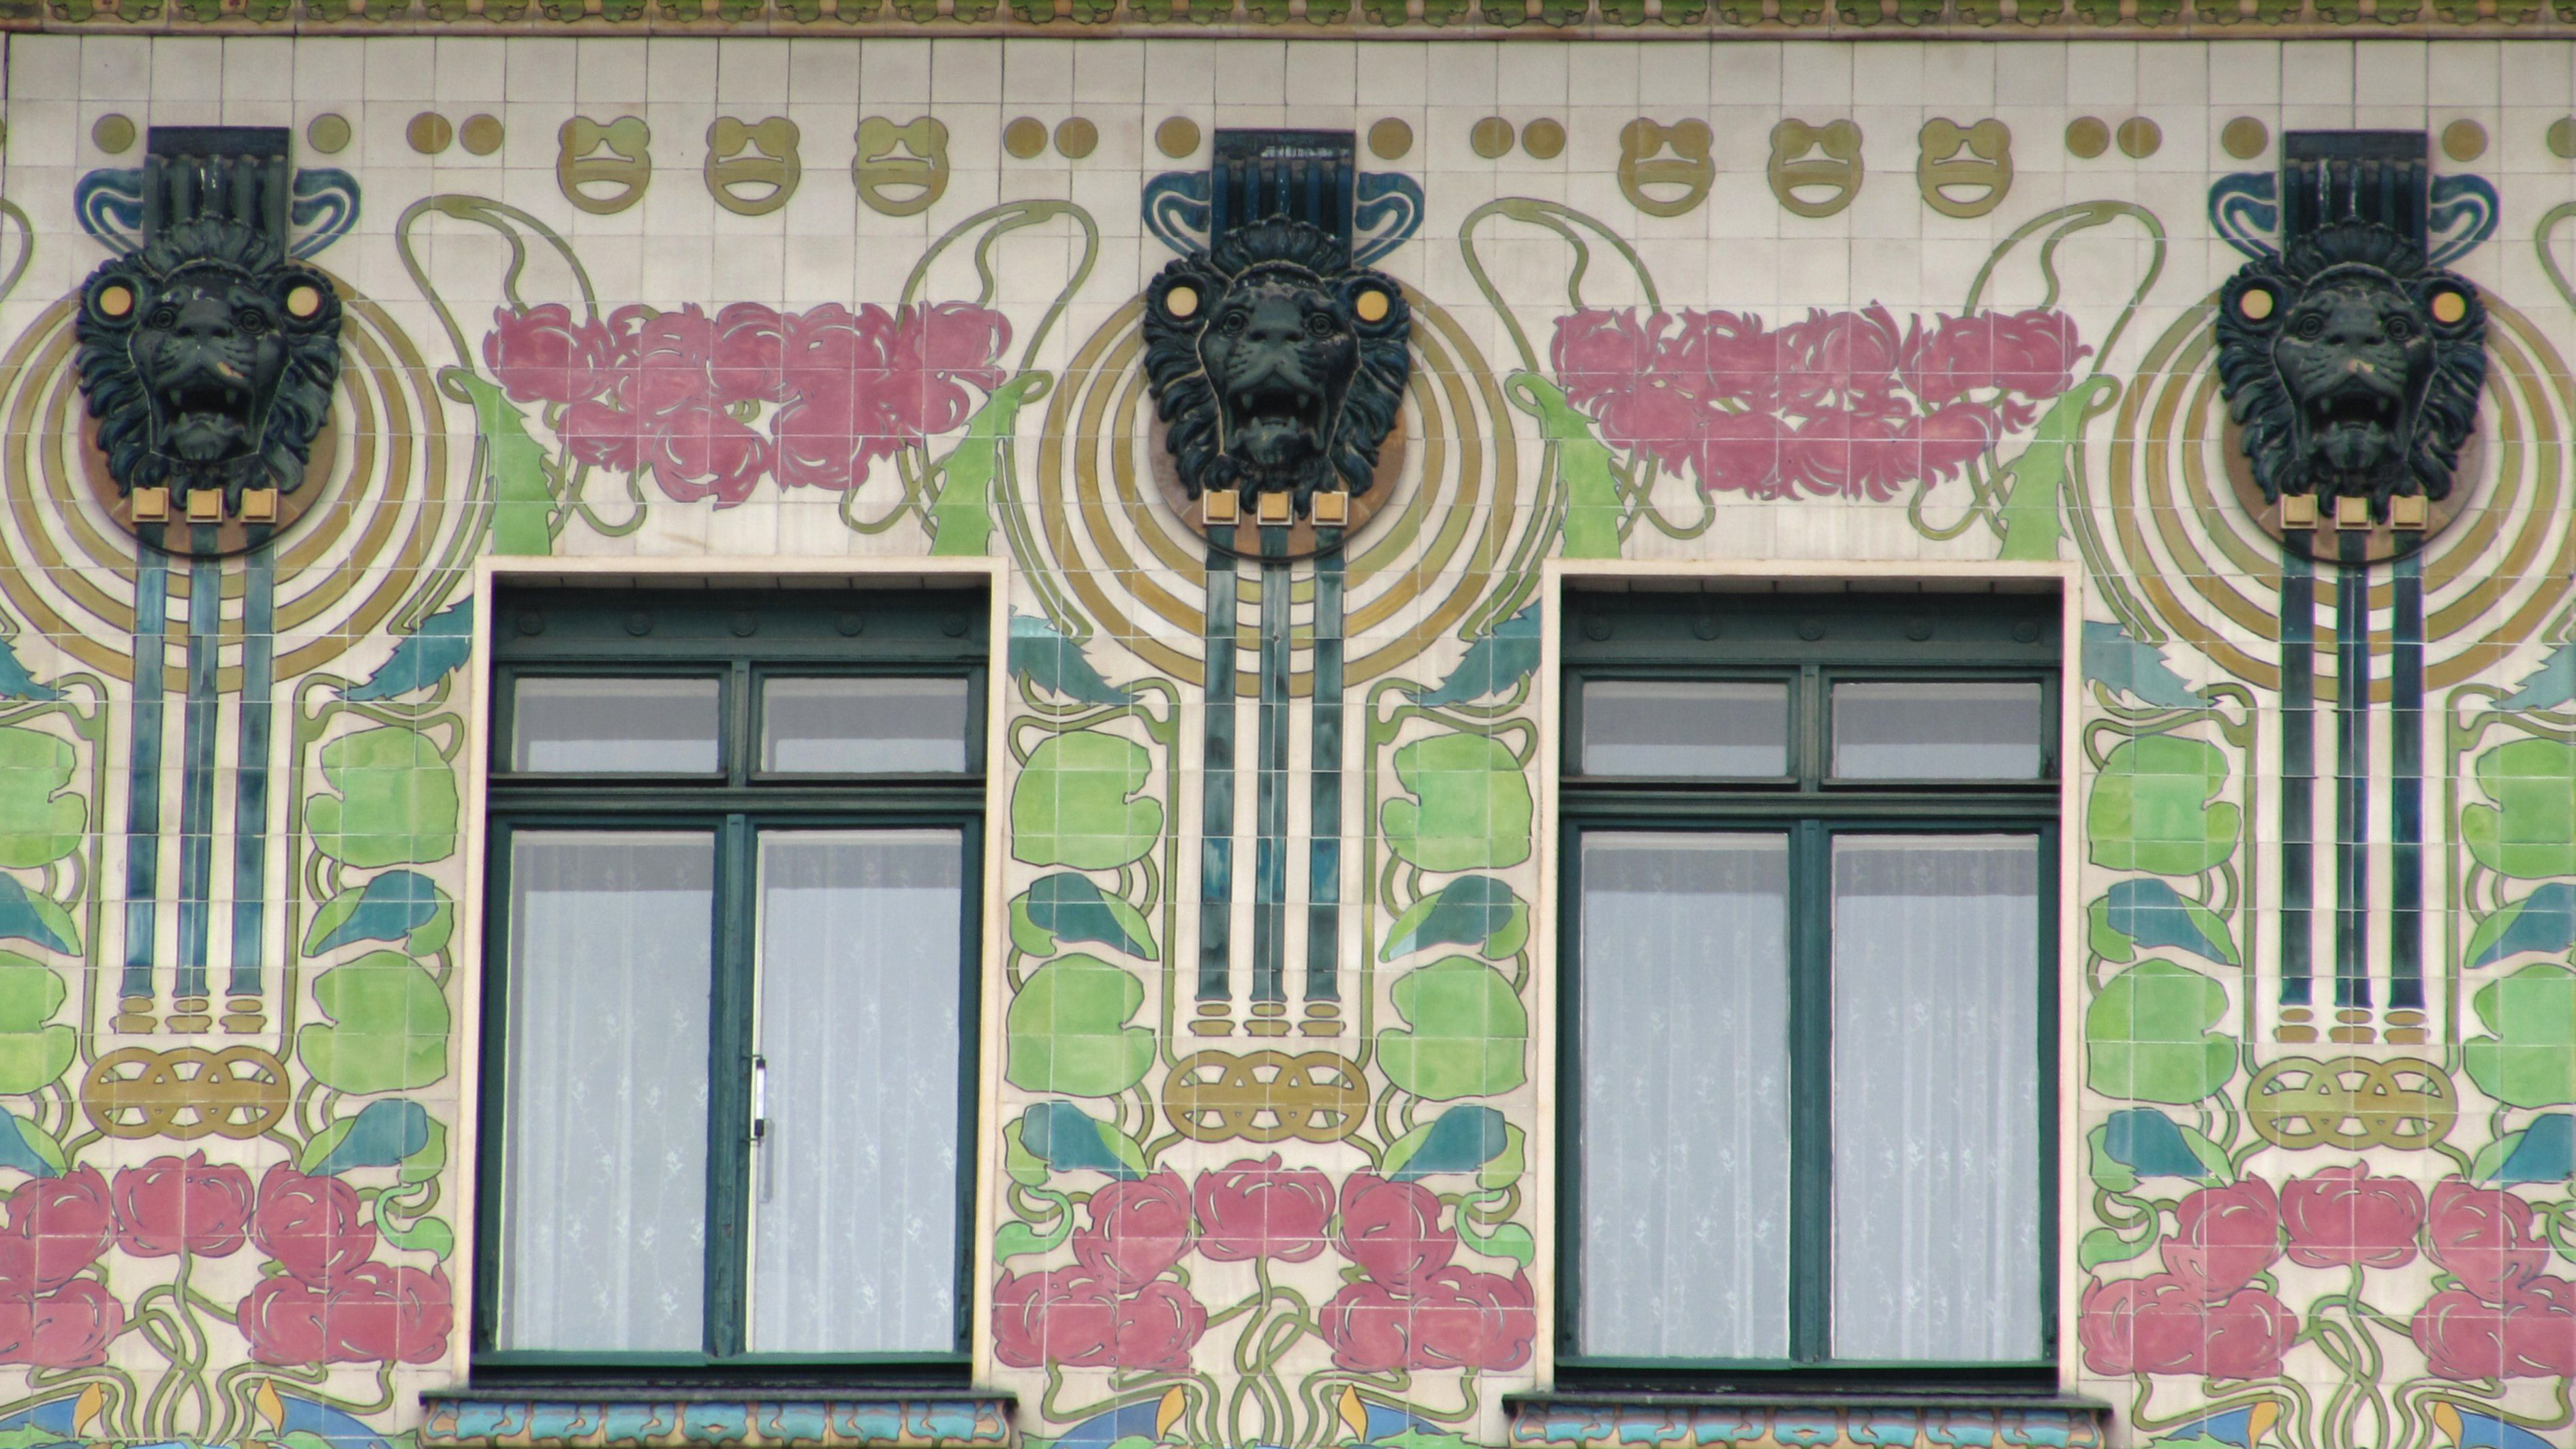 viennese art nouveau by otto wagner